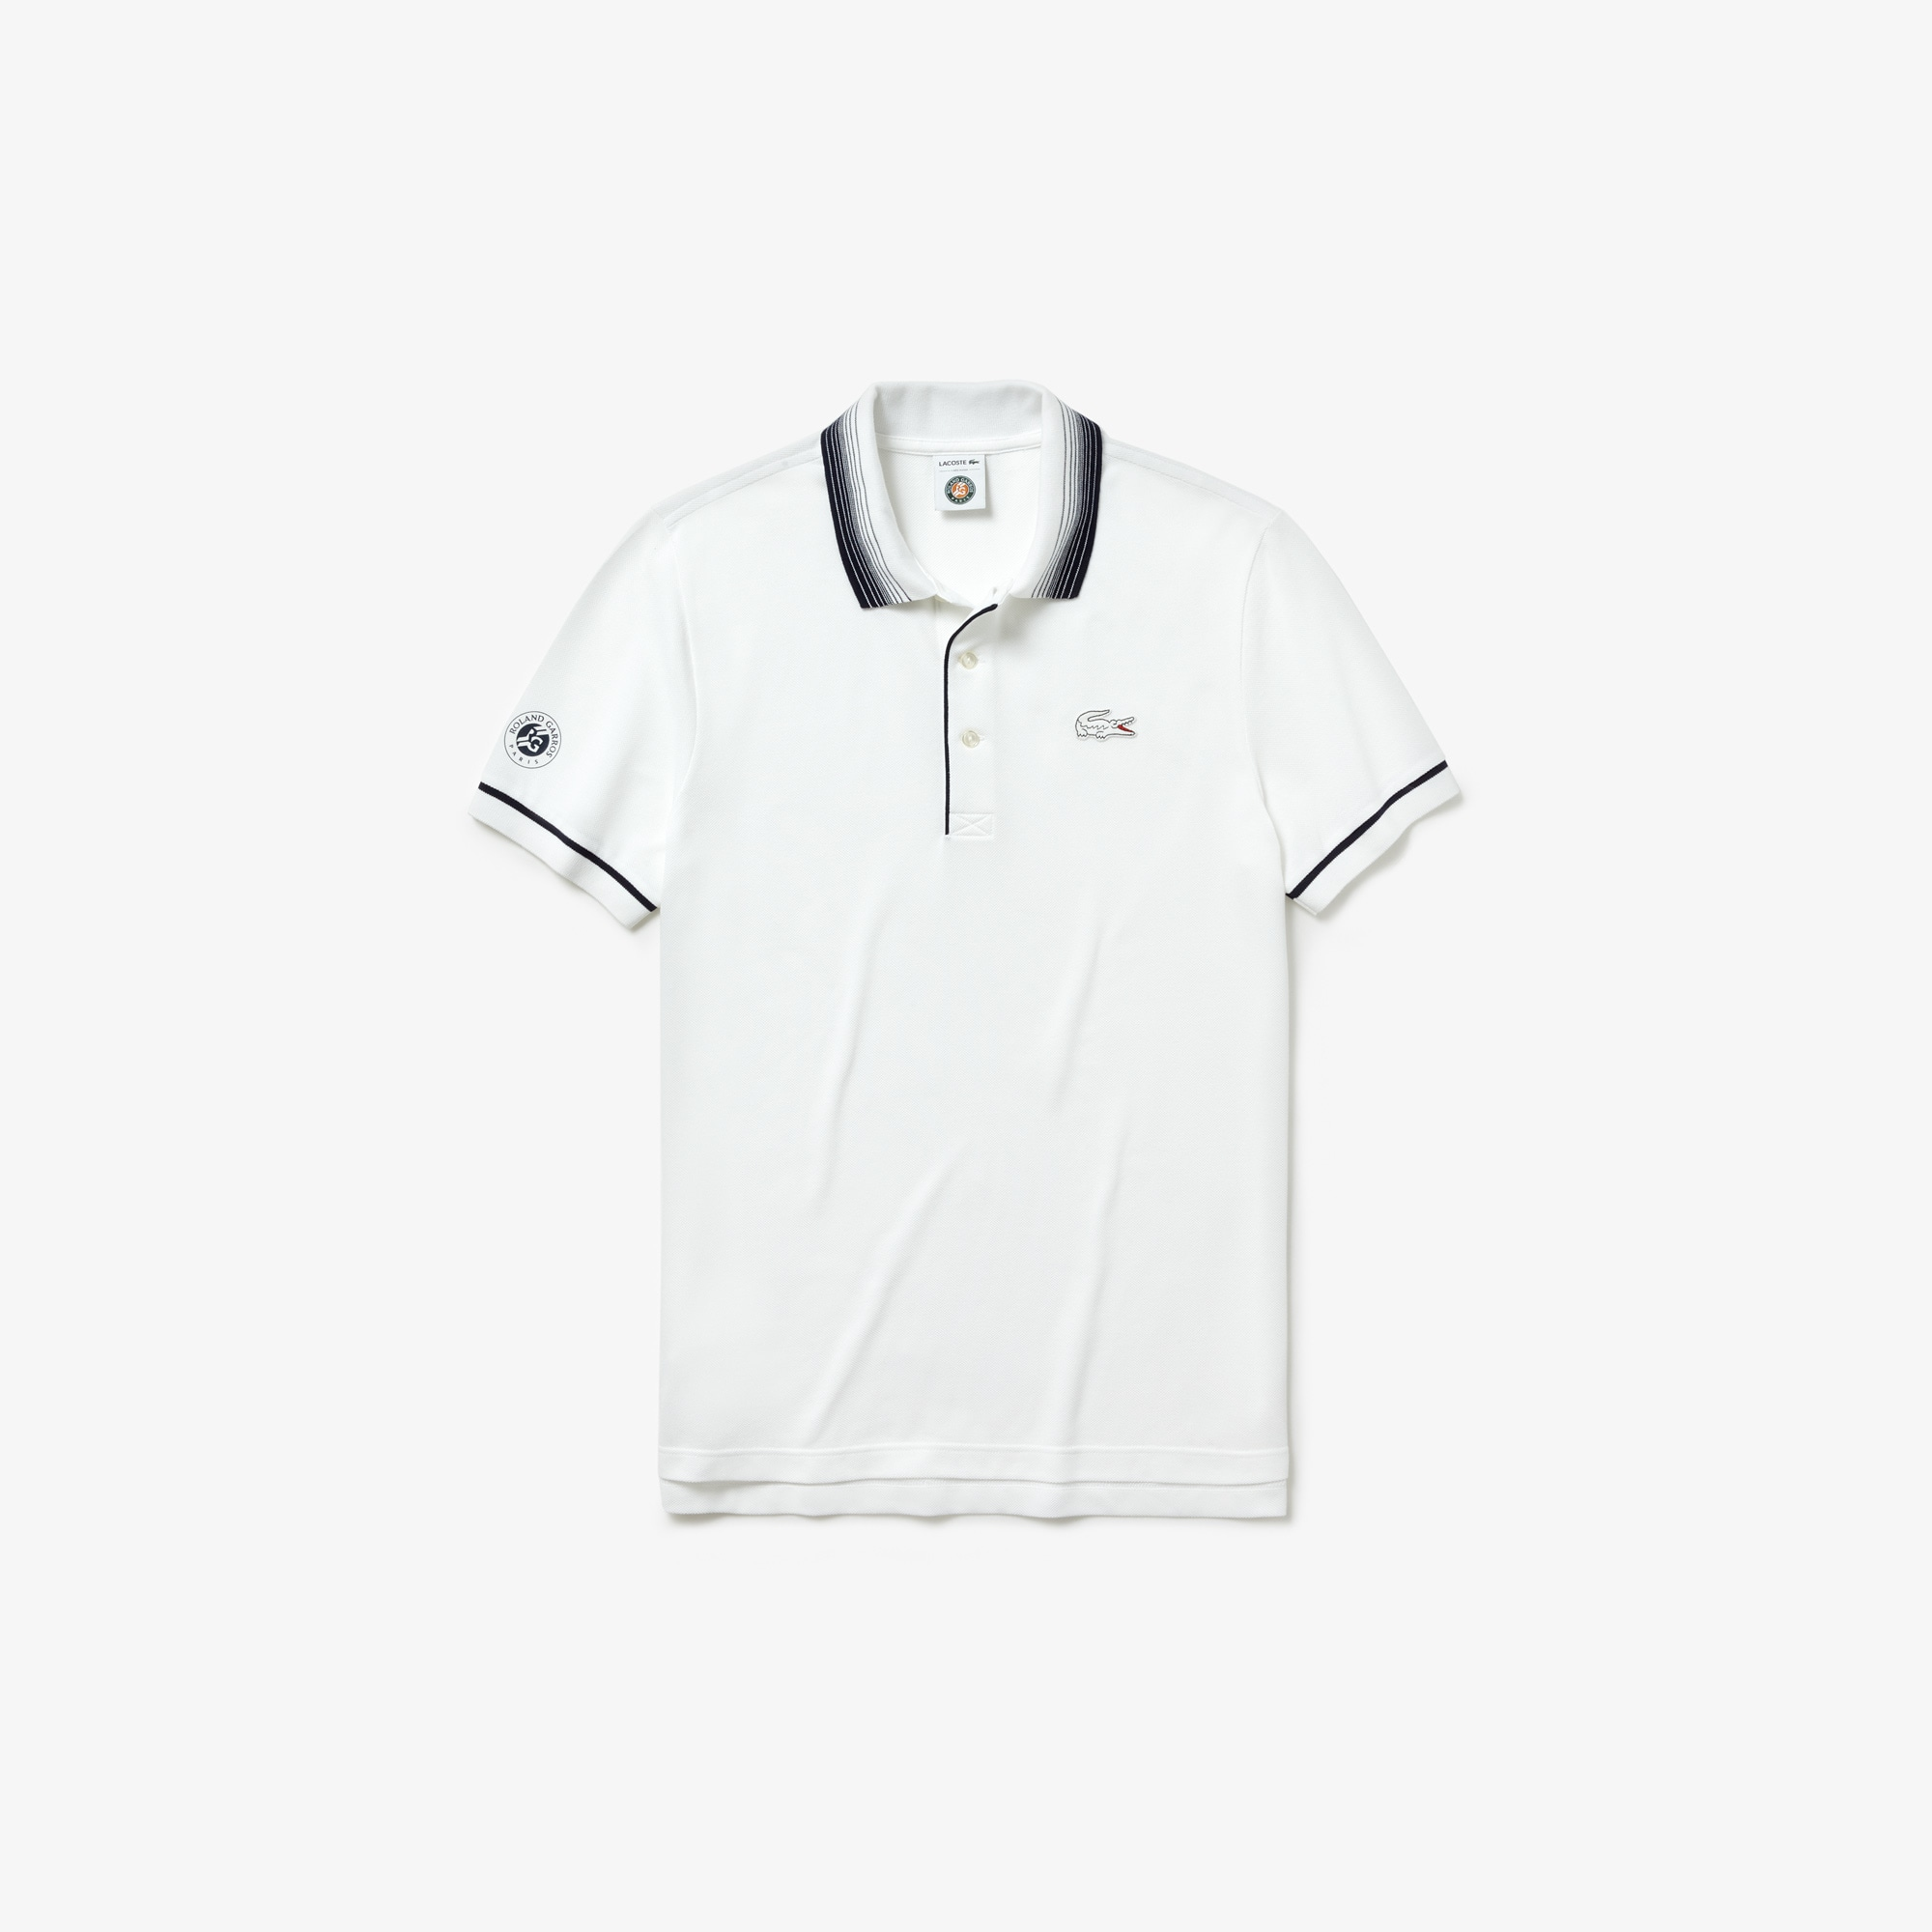 Men's SPORT Roland-Garros Edition Cotton Polo